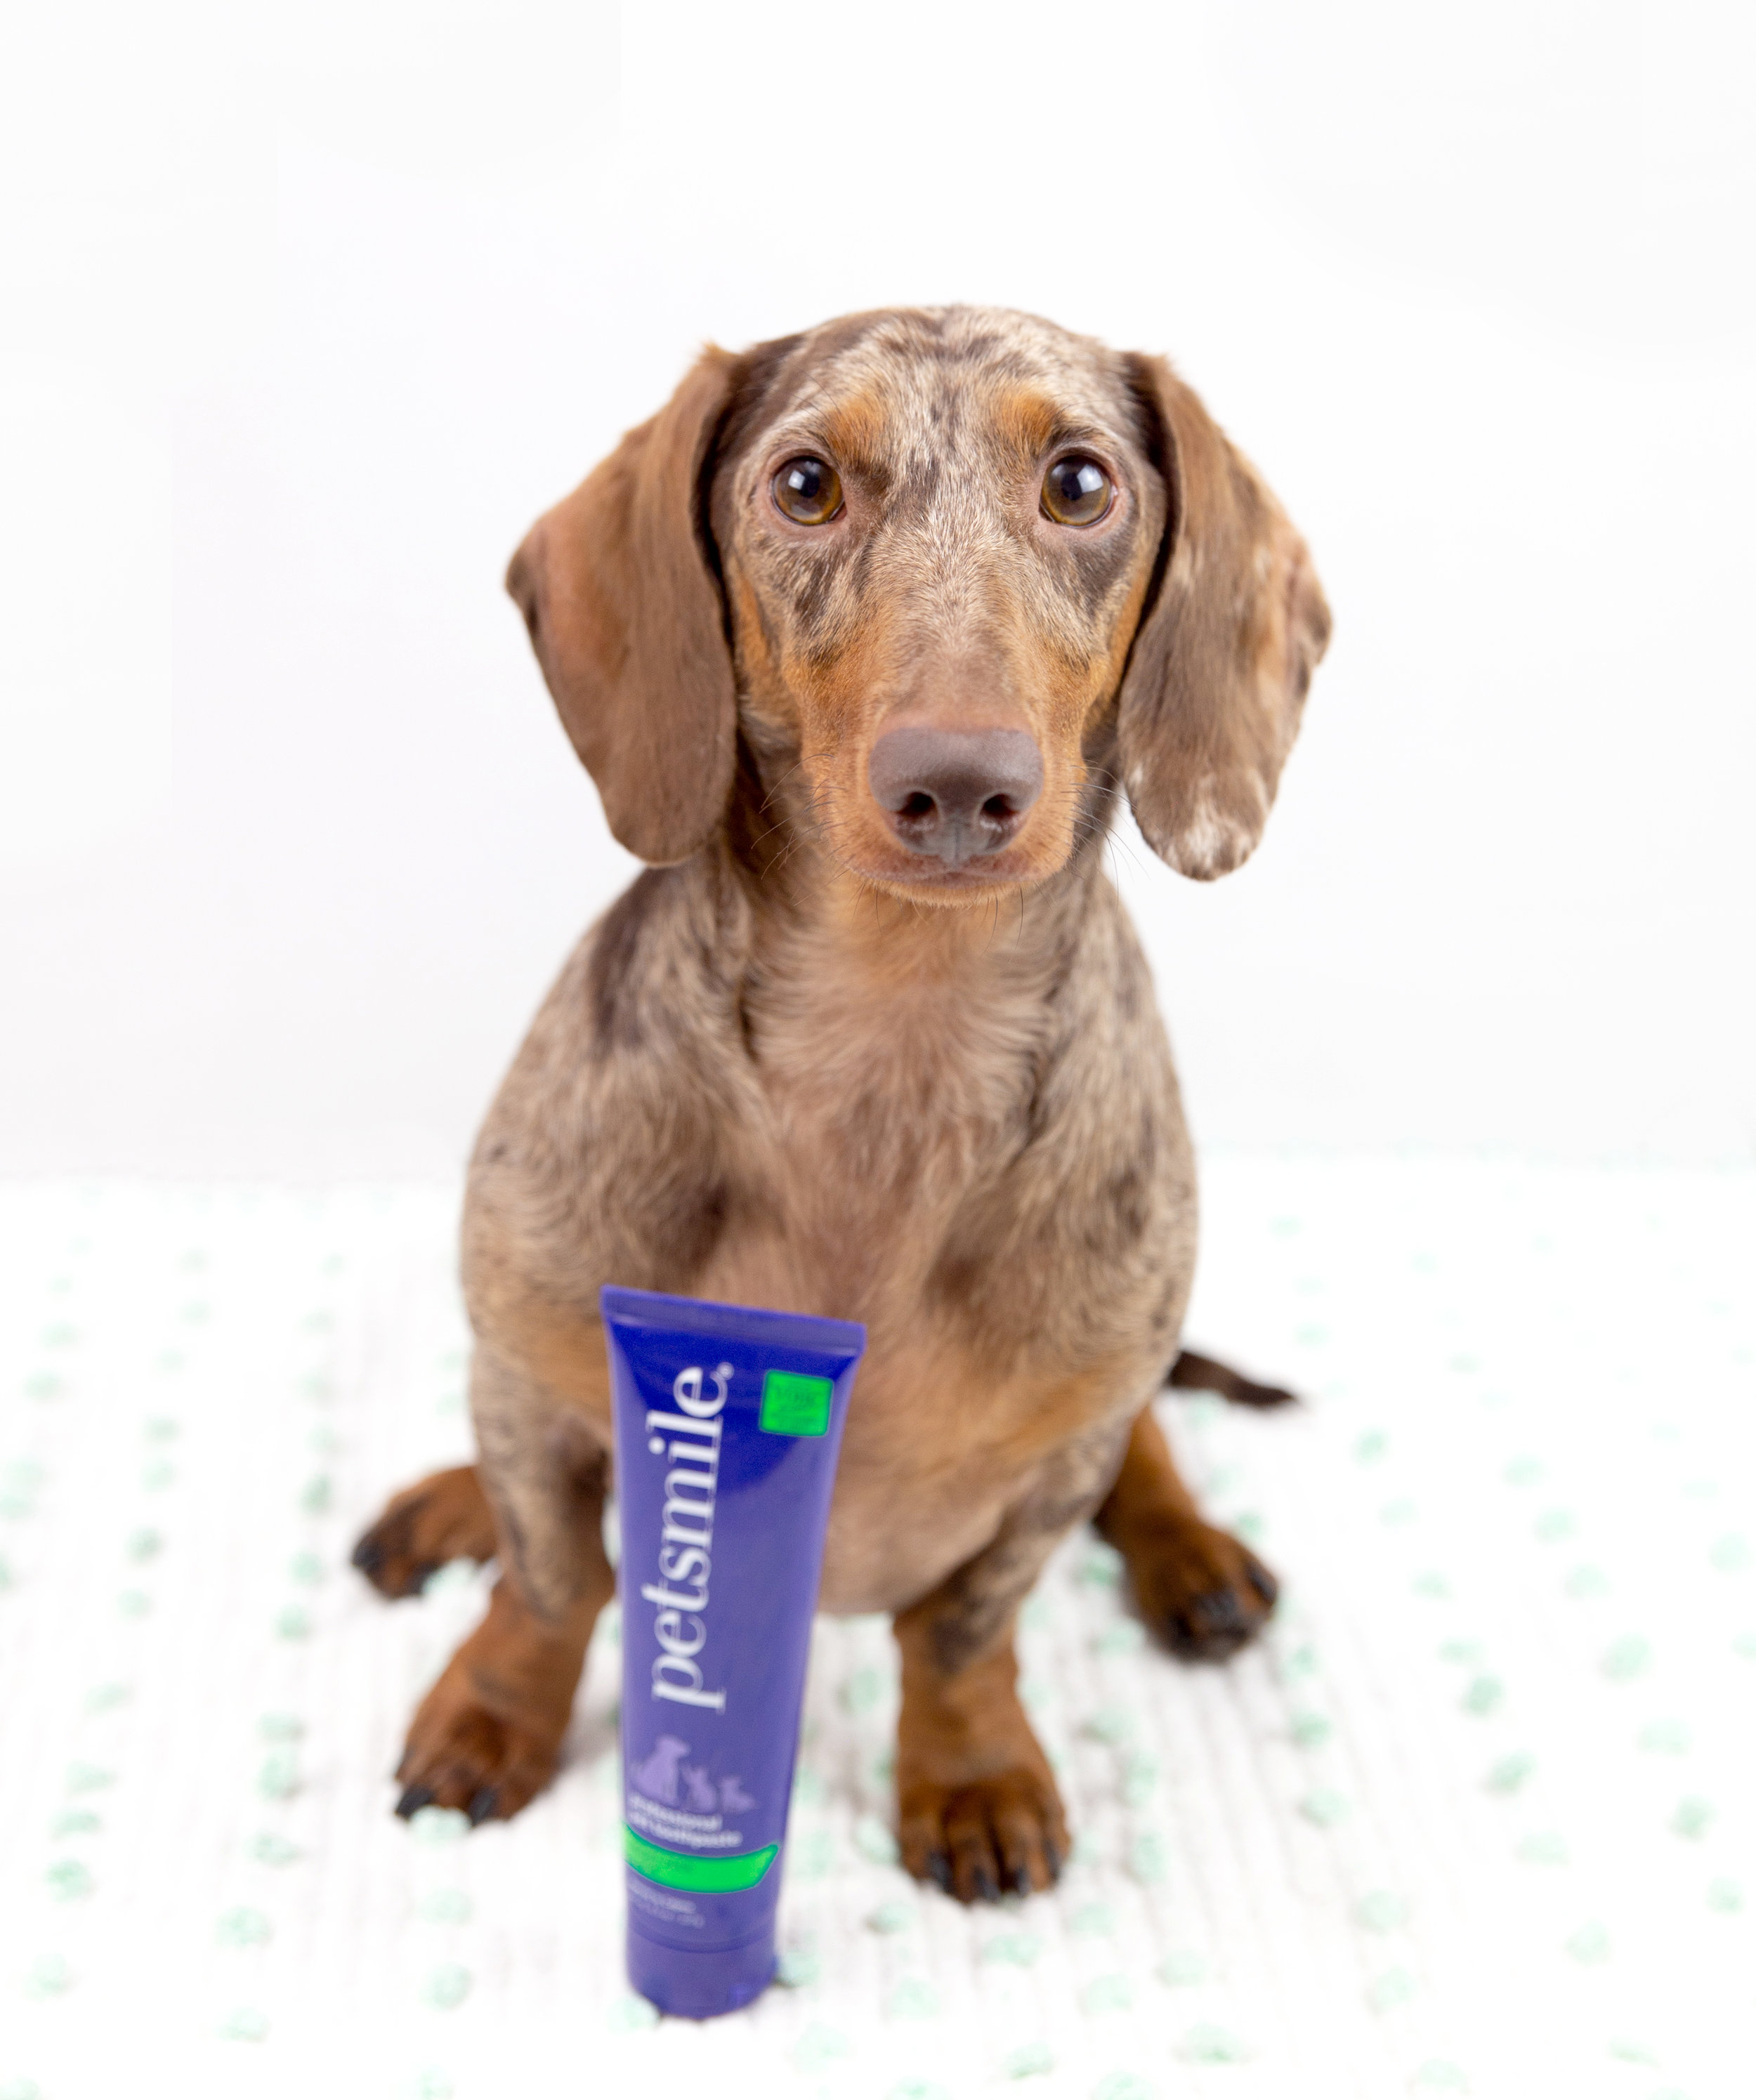 Review of Petsmile Dog Toothpaste: How to Keep Your Dog's Teeth Clean With No Brushing Required Dog Toothpaste for Healthier Gums and Better Breath